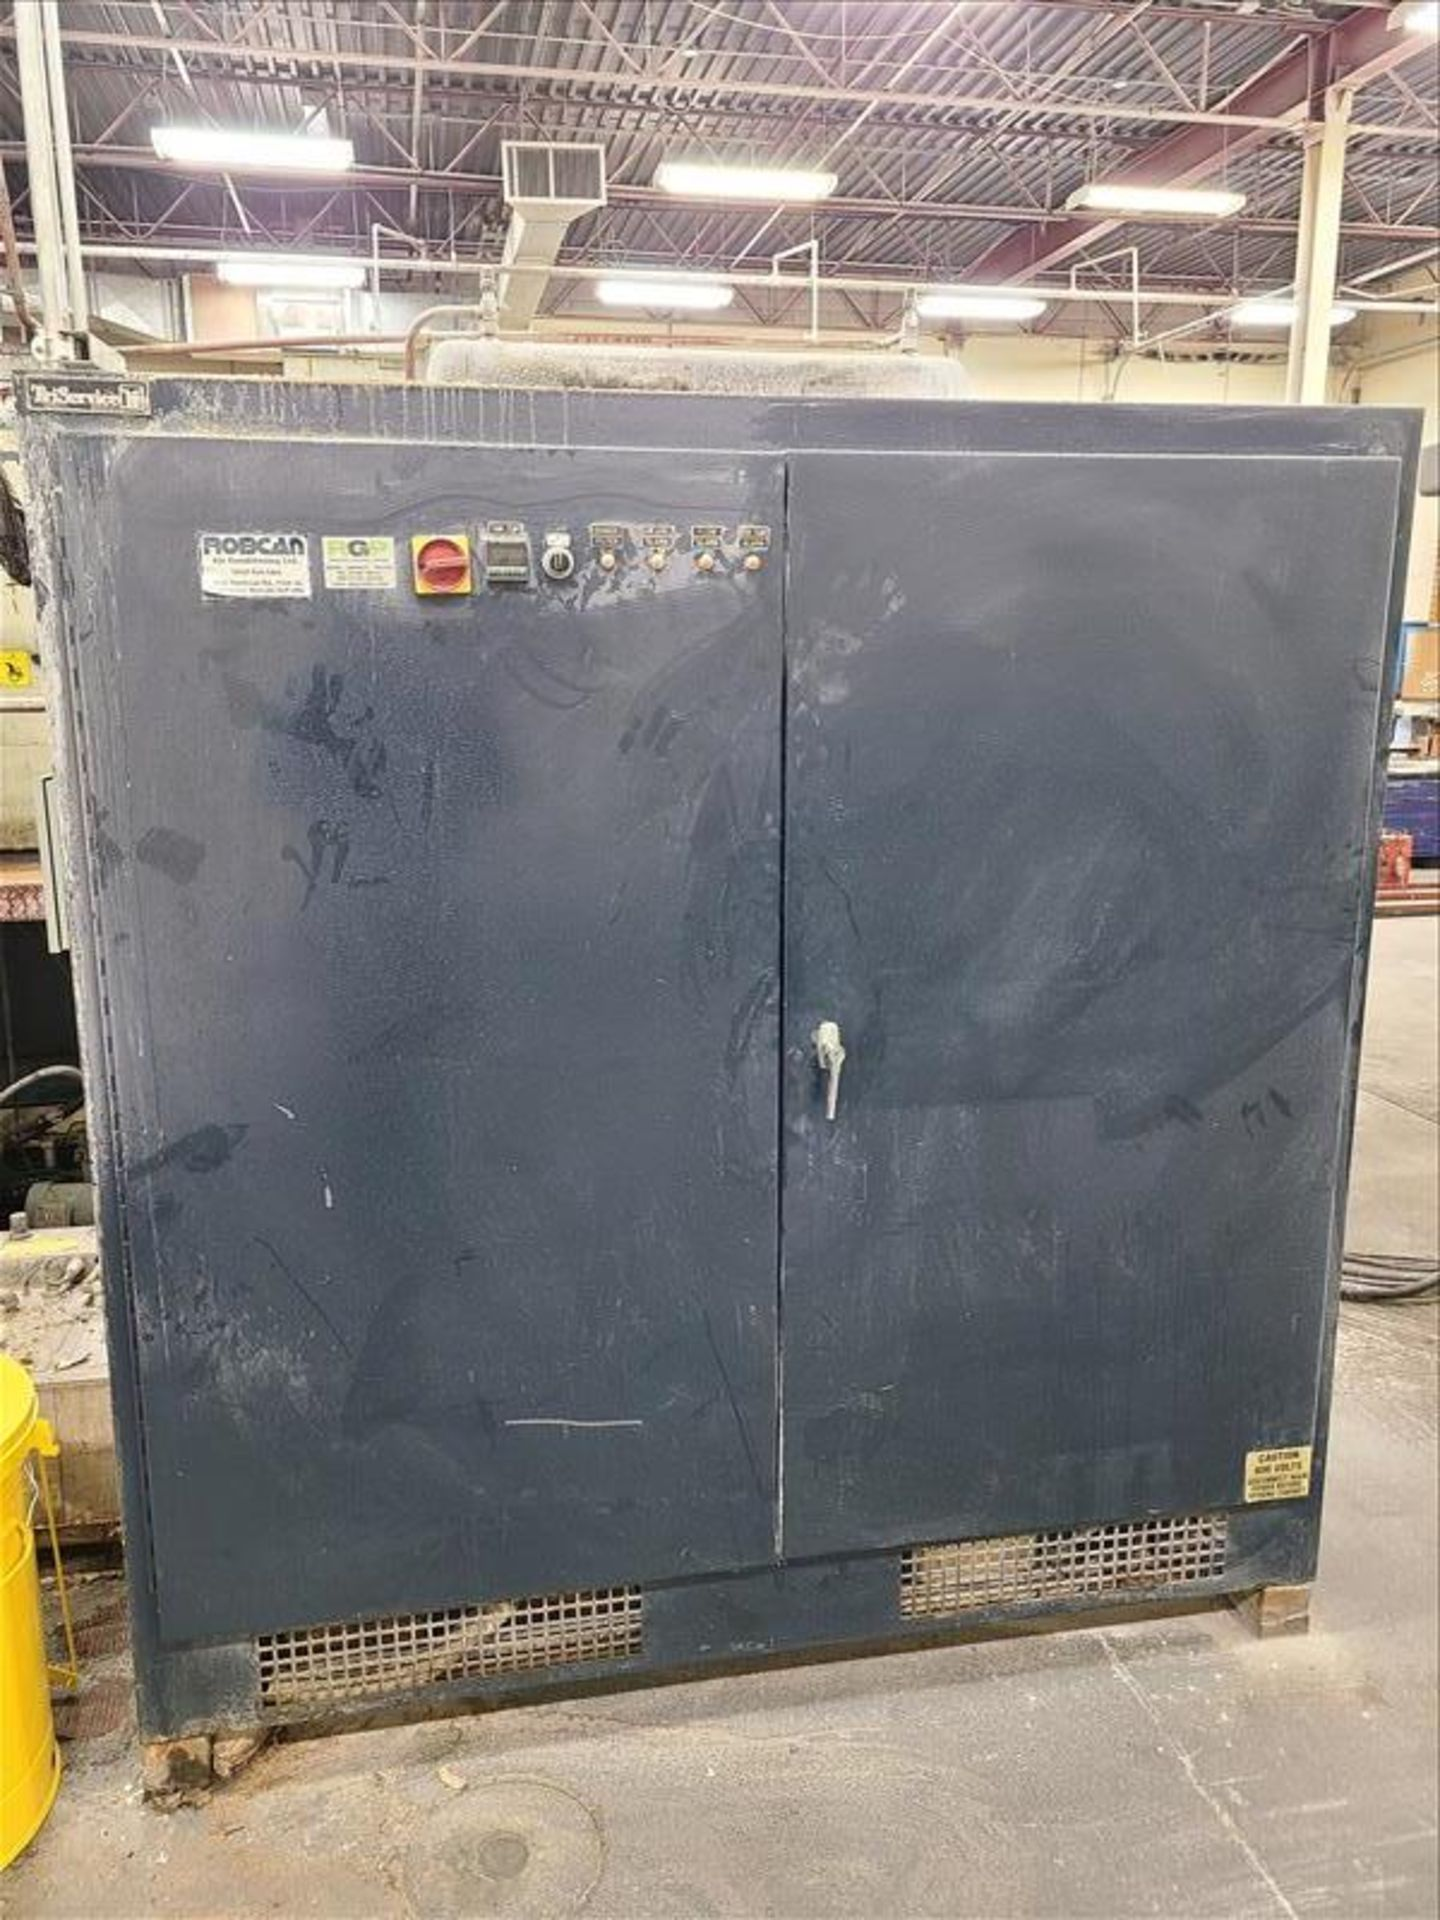 Komori 4-color offset printing press, Series Lithrone 40, model L-440, S/N.2202 approx. 68 - Image 14 of 22